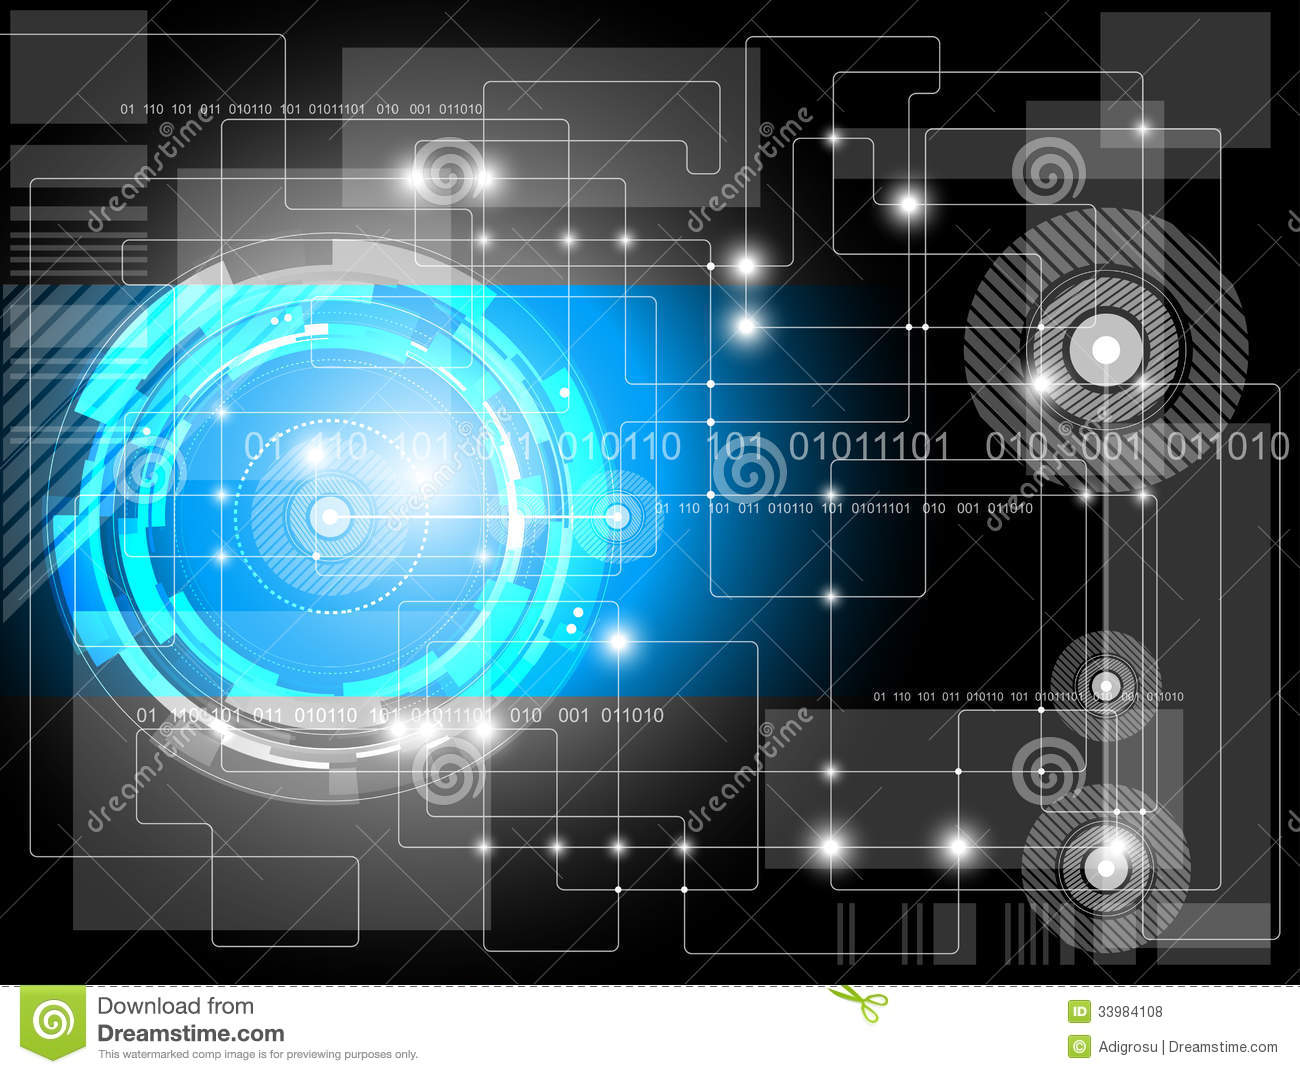 Amazing Wallpaper High Resolution Technology - futuristic-technology-background-high-resolution-copy-illustration-33984108  Perfect Image Reference_98135.jpg